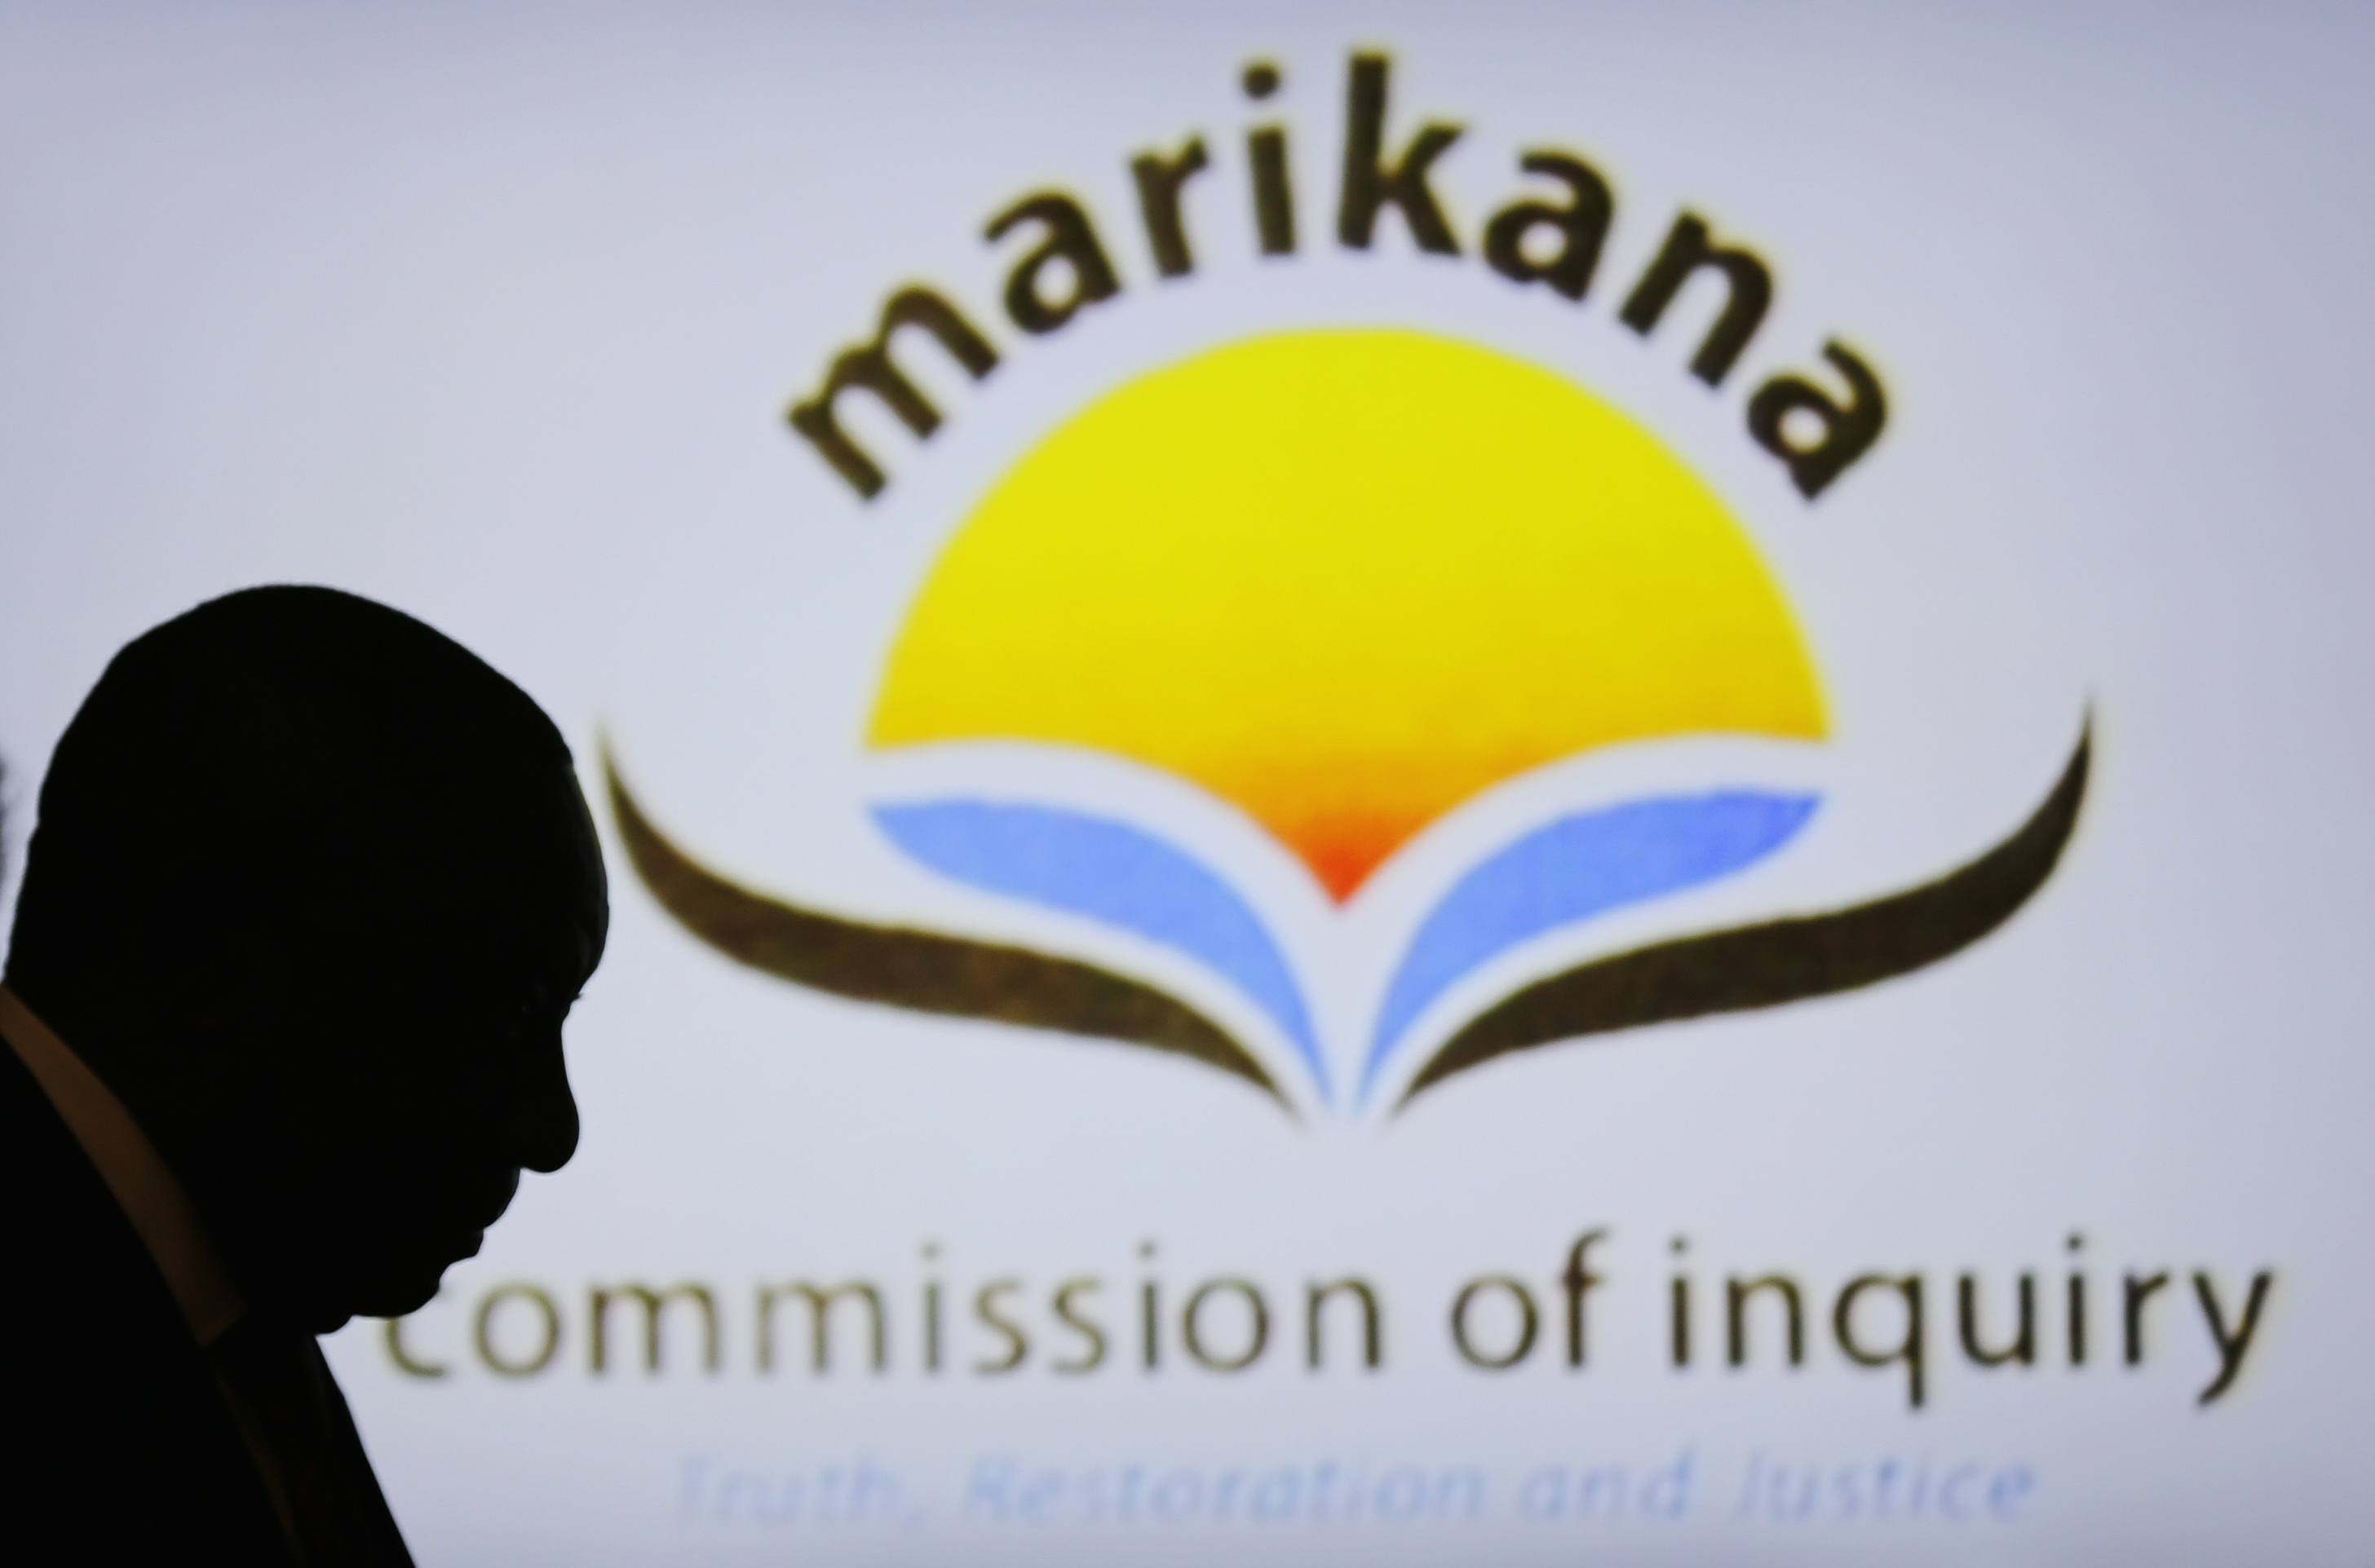 South African Deputy President Cyril Ramaphosa is silhouetted in the Farlam Commission, Aug. 11, 2014. Ramaphosa is facing a probe into the 2012 Marikana killings of striking miners.